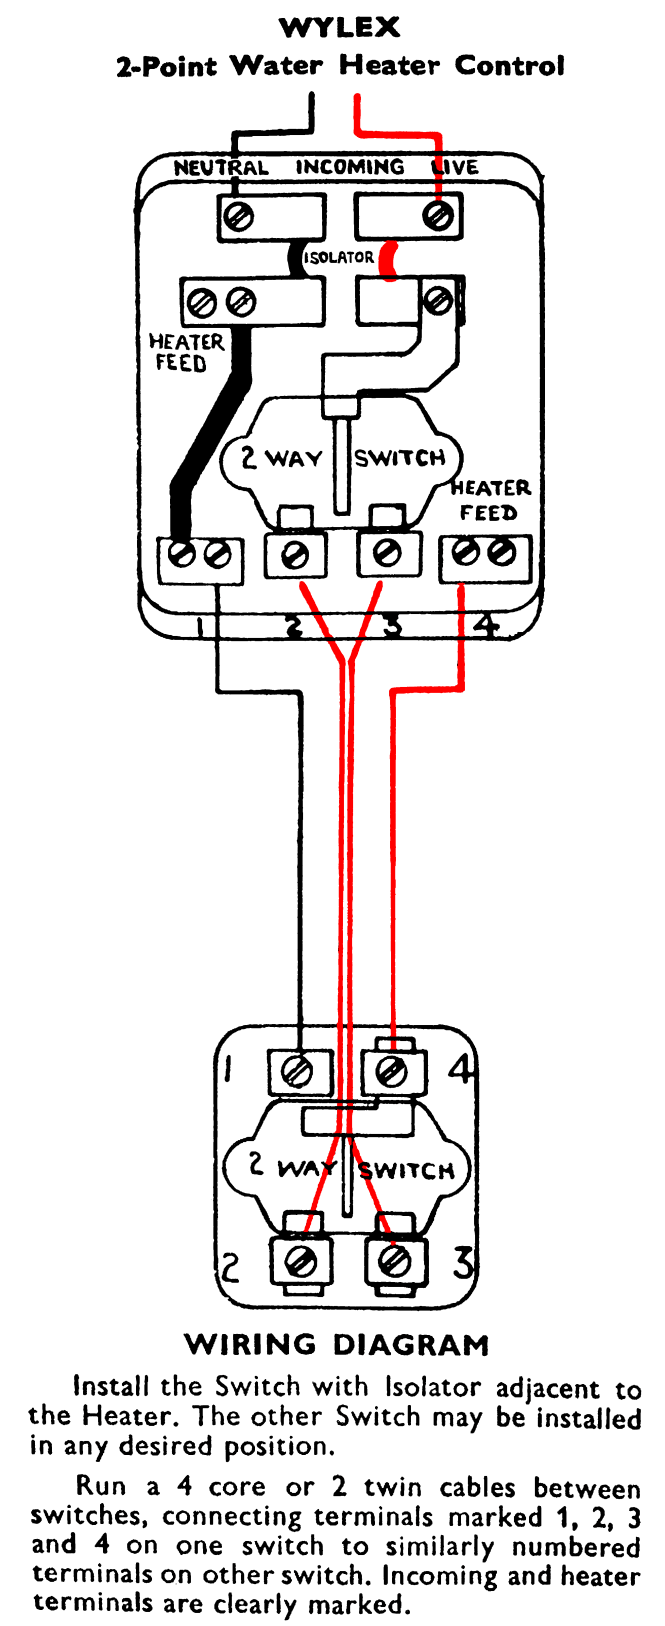 santon dual immersion heater wiring diagram wiring diagram dual immersion heater wiring diagram schematics and diagrams